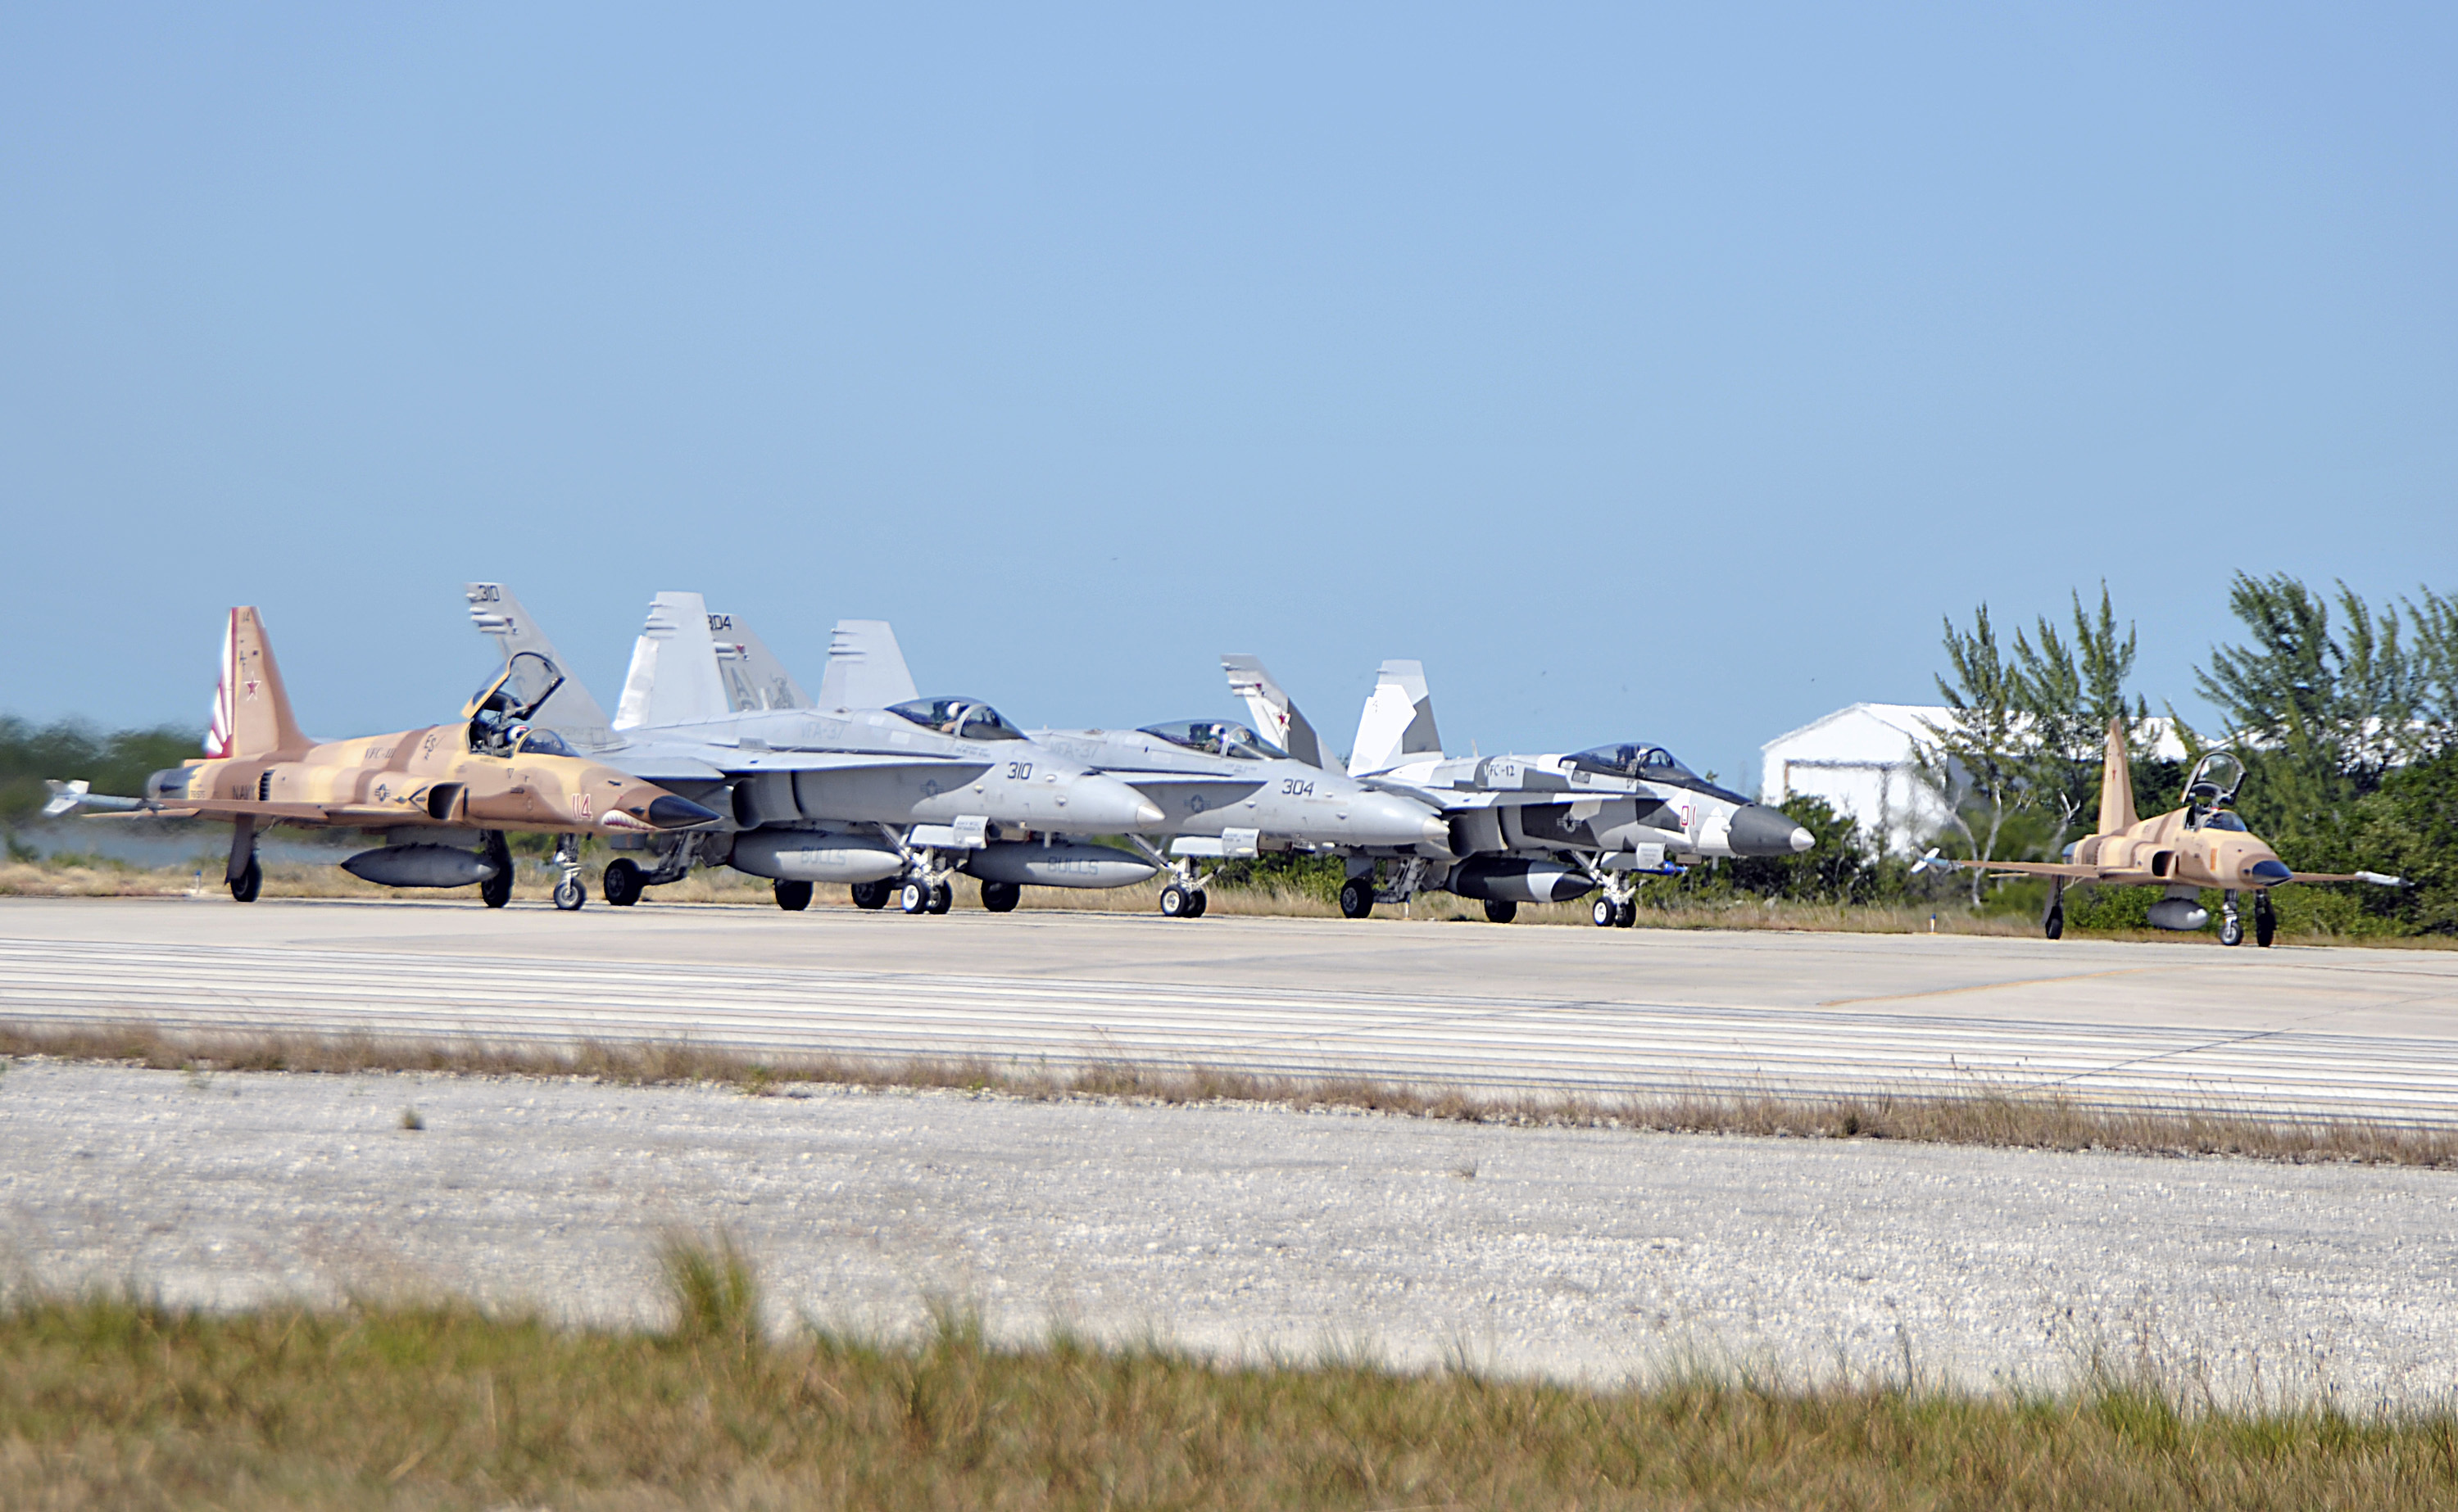 VFC-111 F-5s, a VFC-12 Hornet, and a pair of fleet Hornets prepare to depart on a air combat training mission over the Gulf of Mexico.